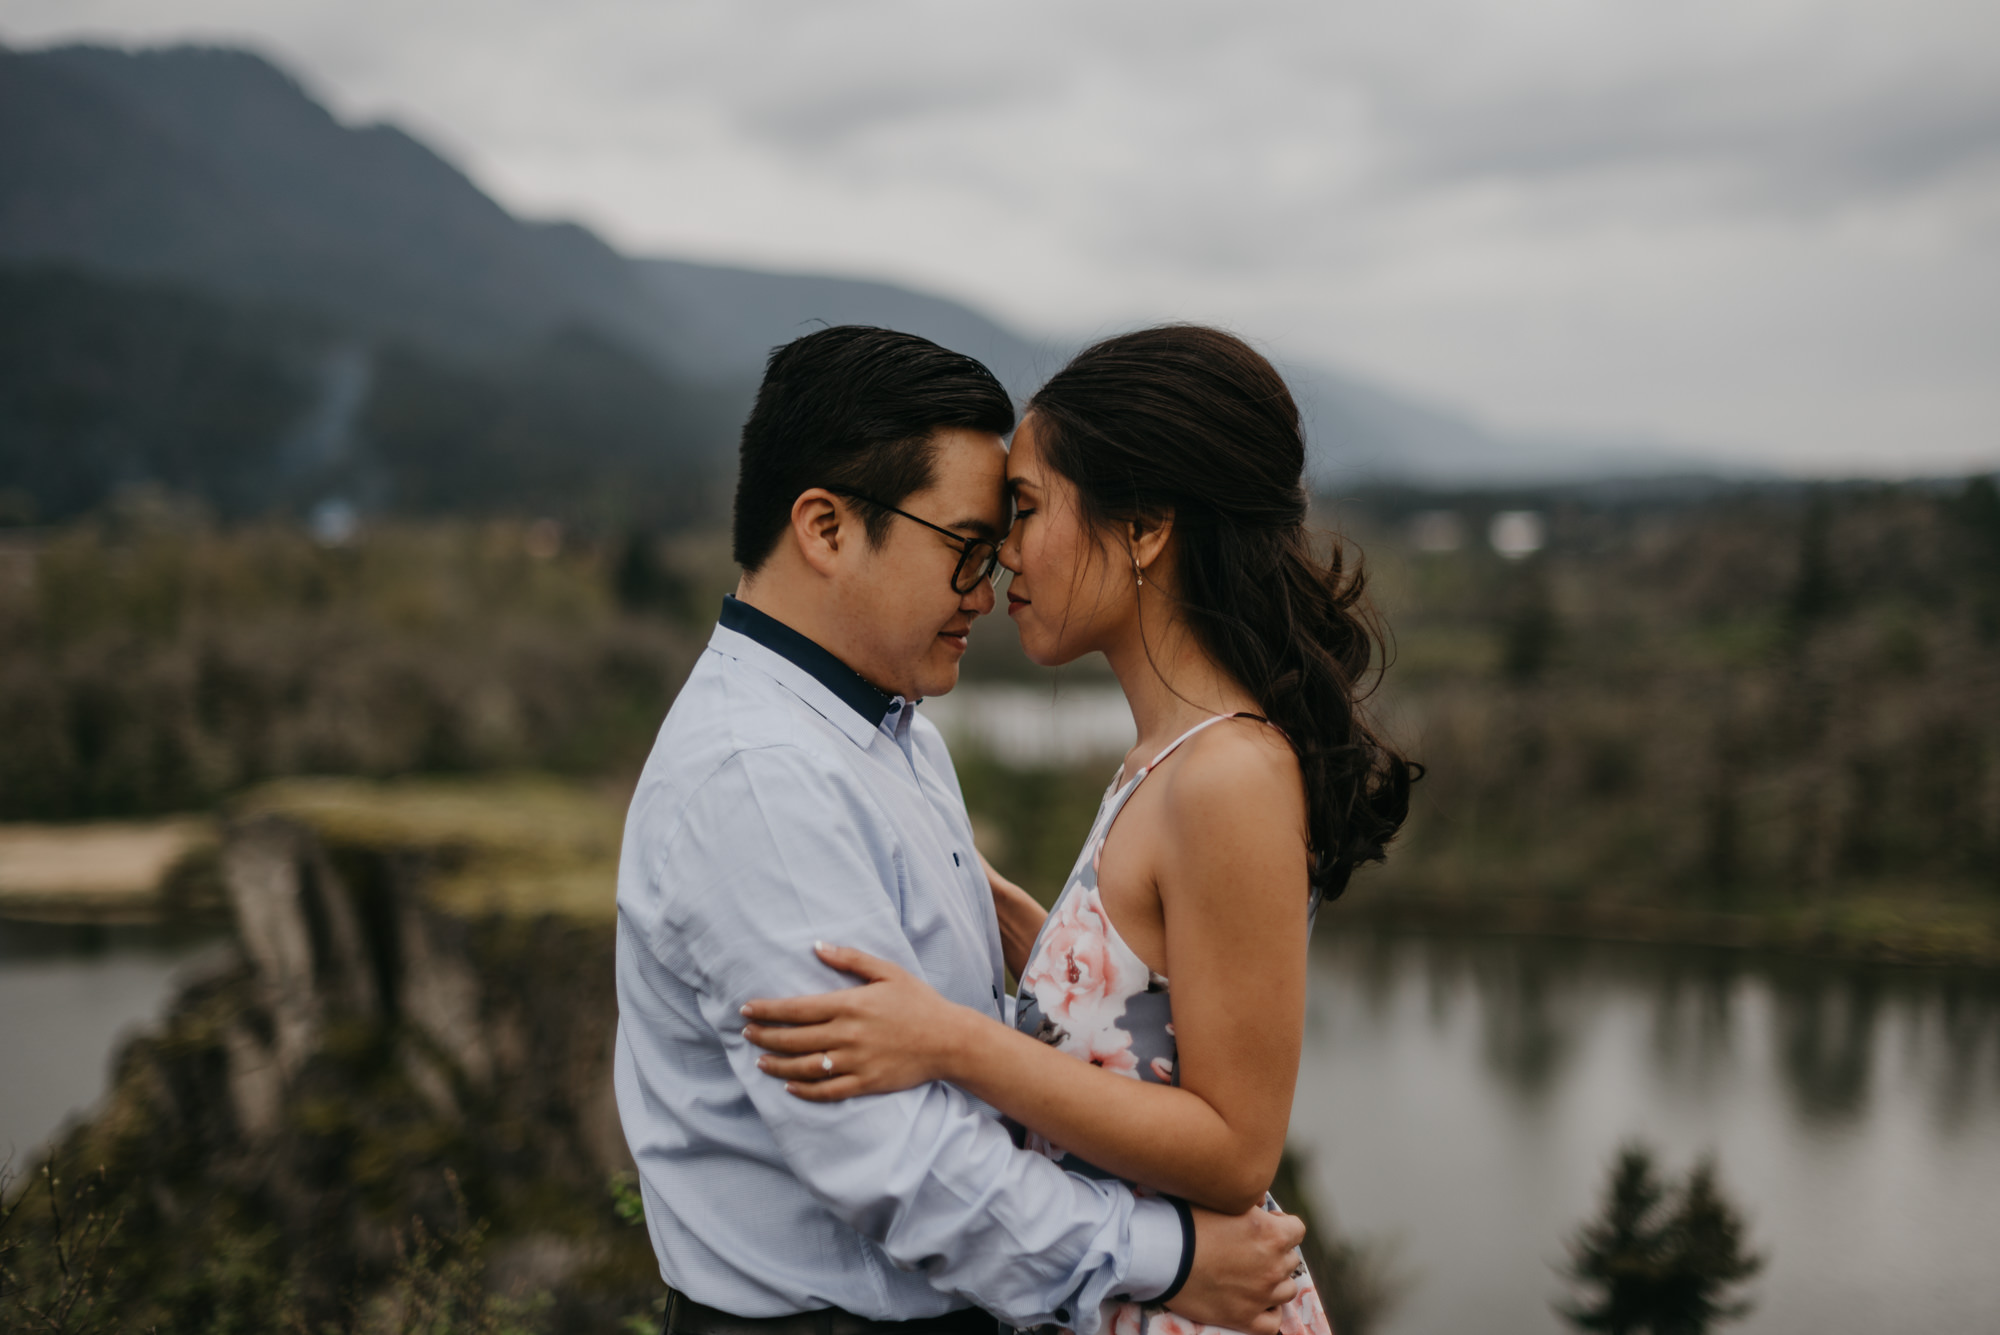 cascade-locks-engagement-cloudy-fun-sunset-4556.jpg